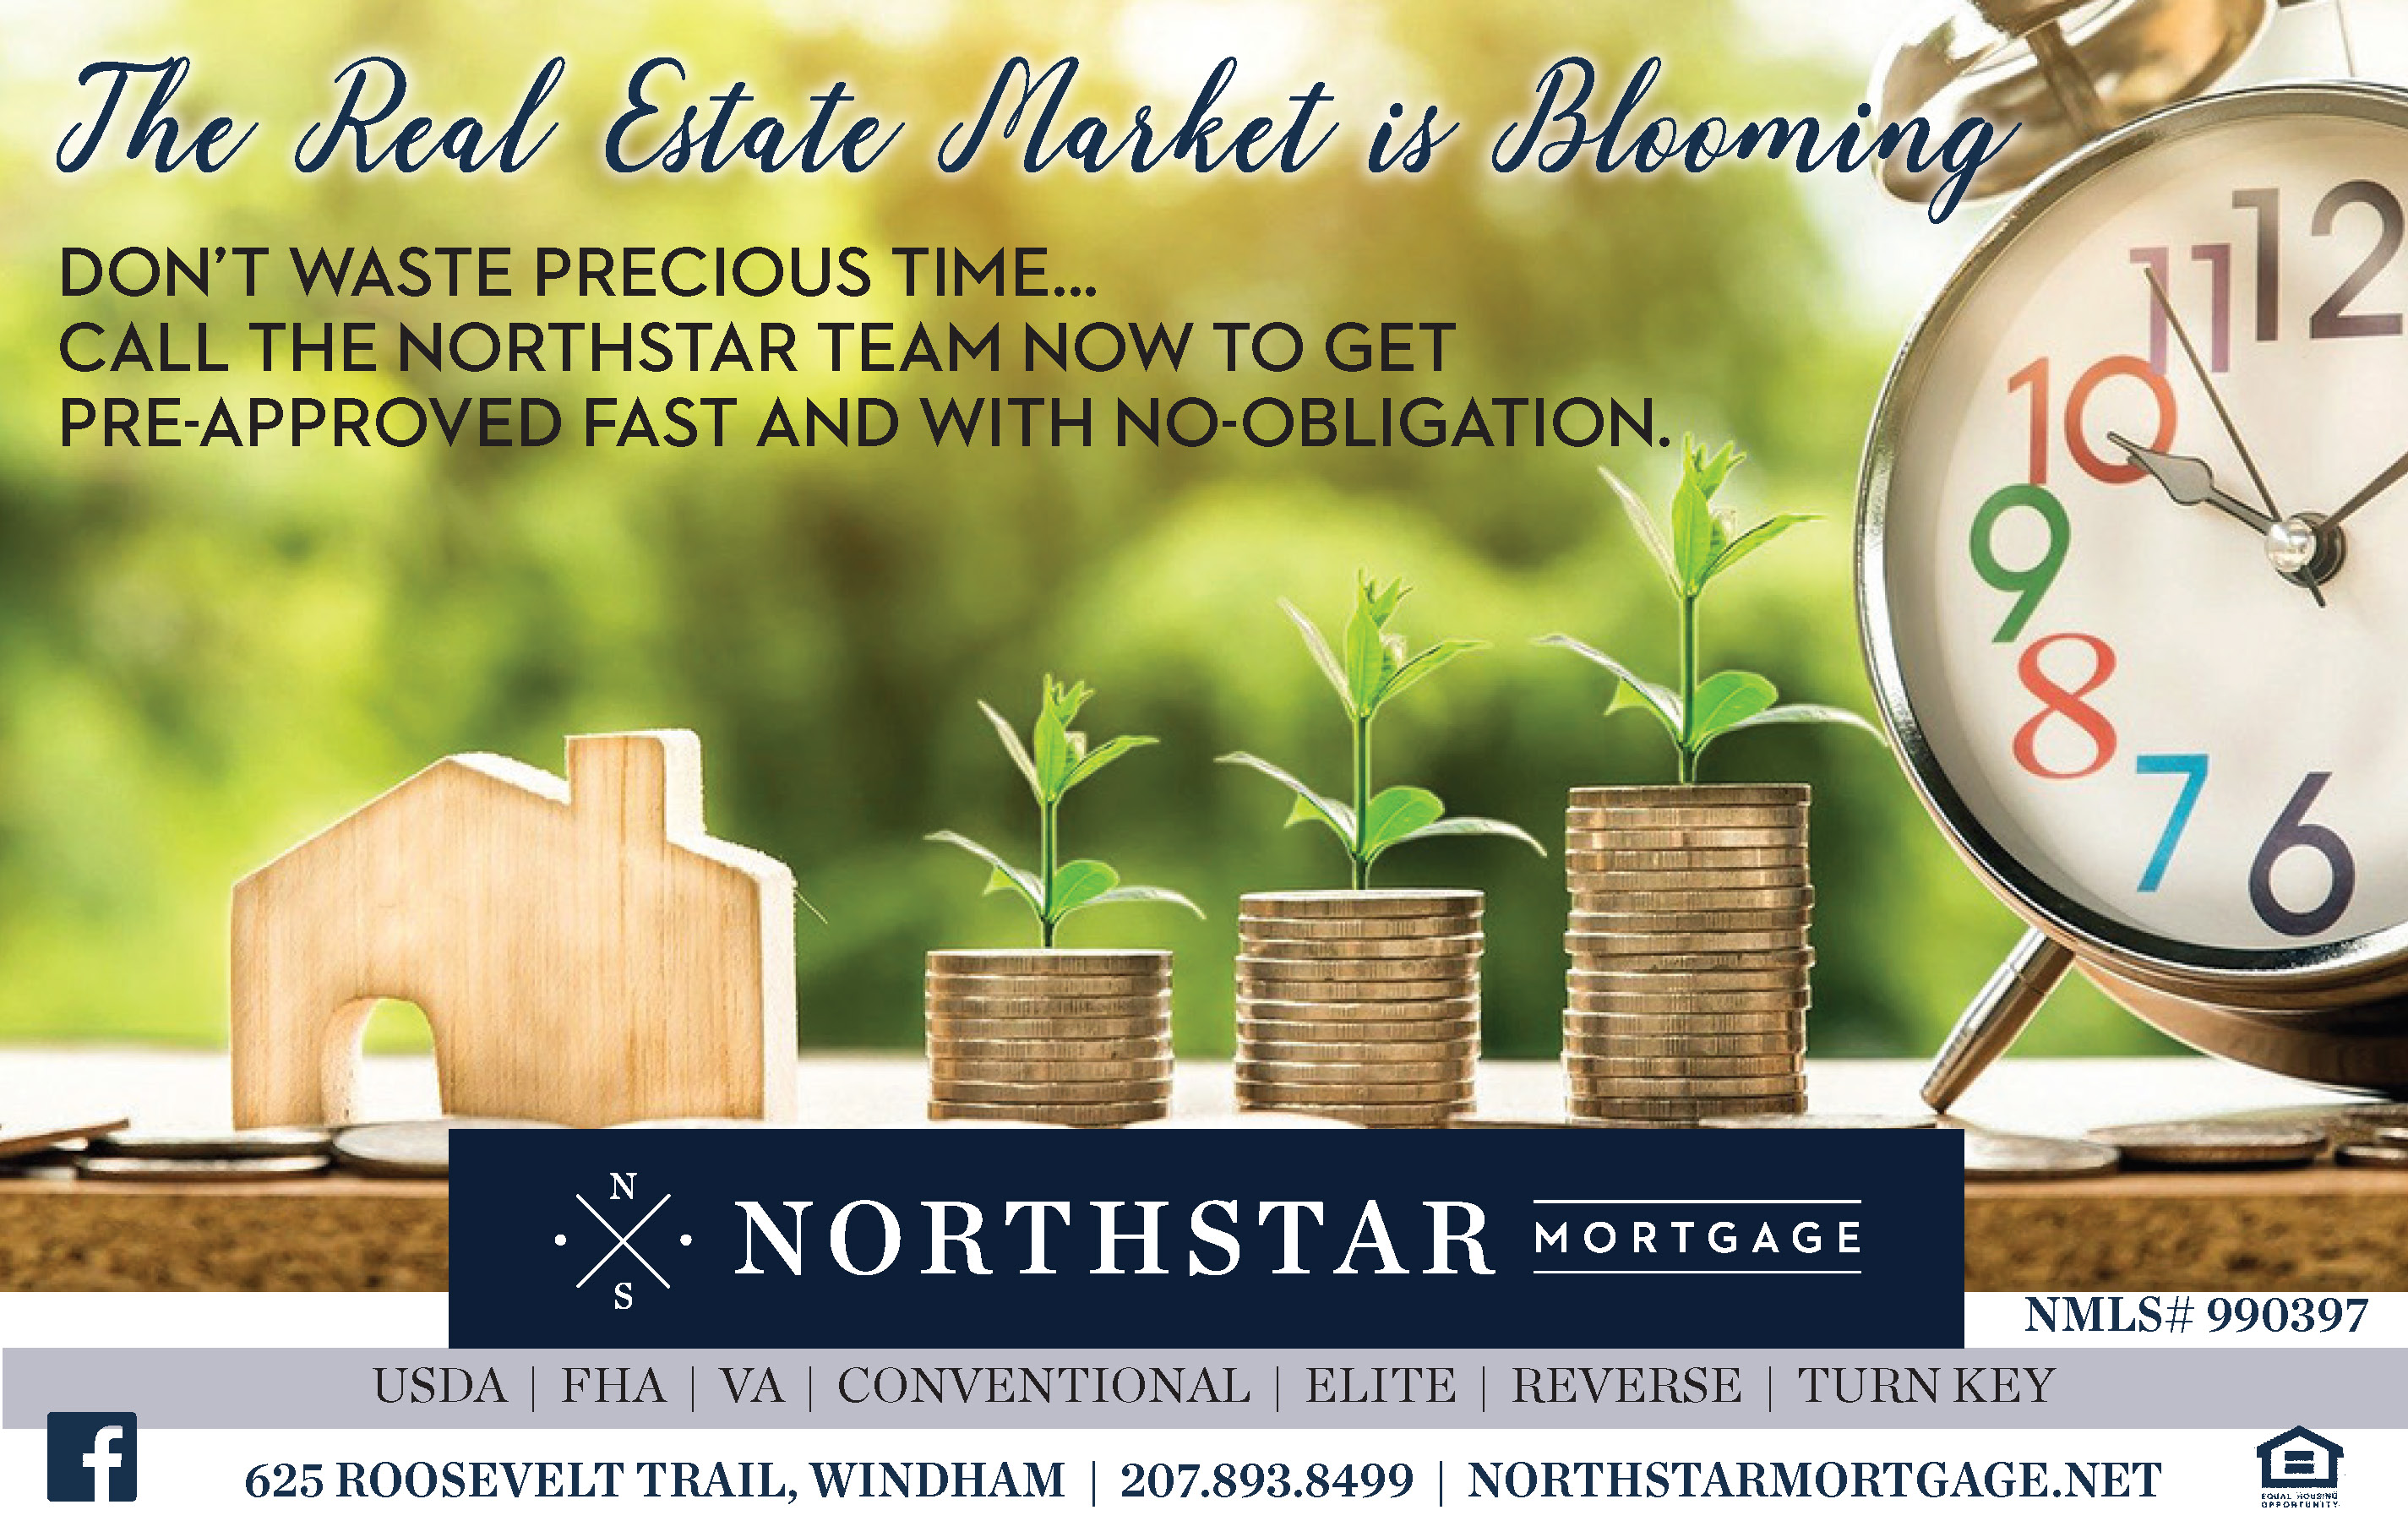 http://www.northstarmortgage.net/